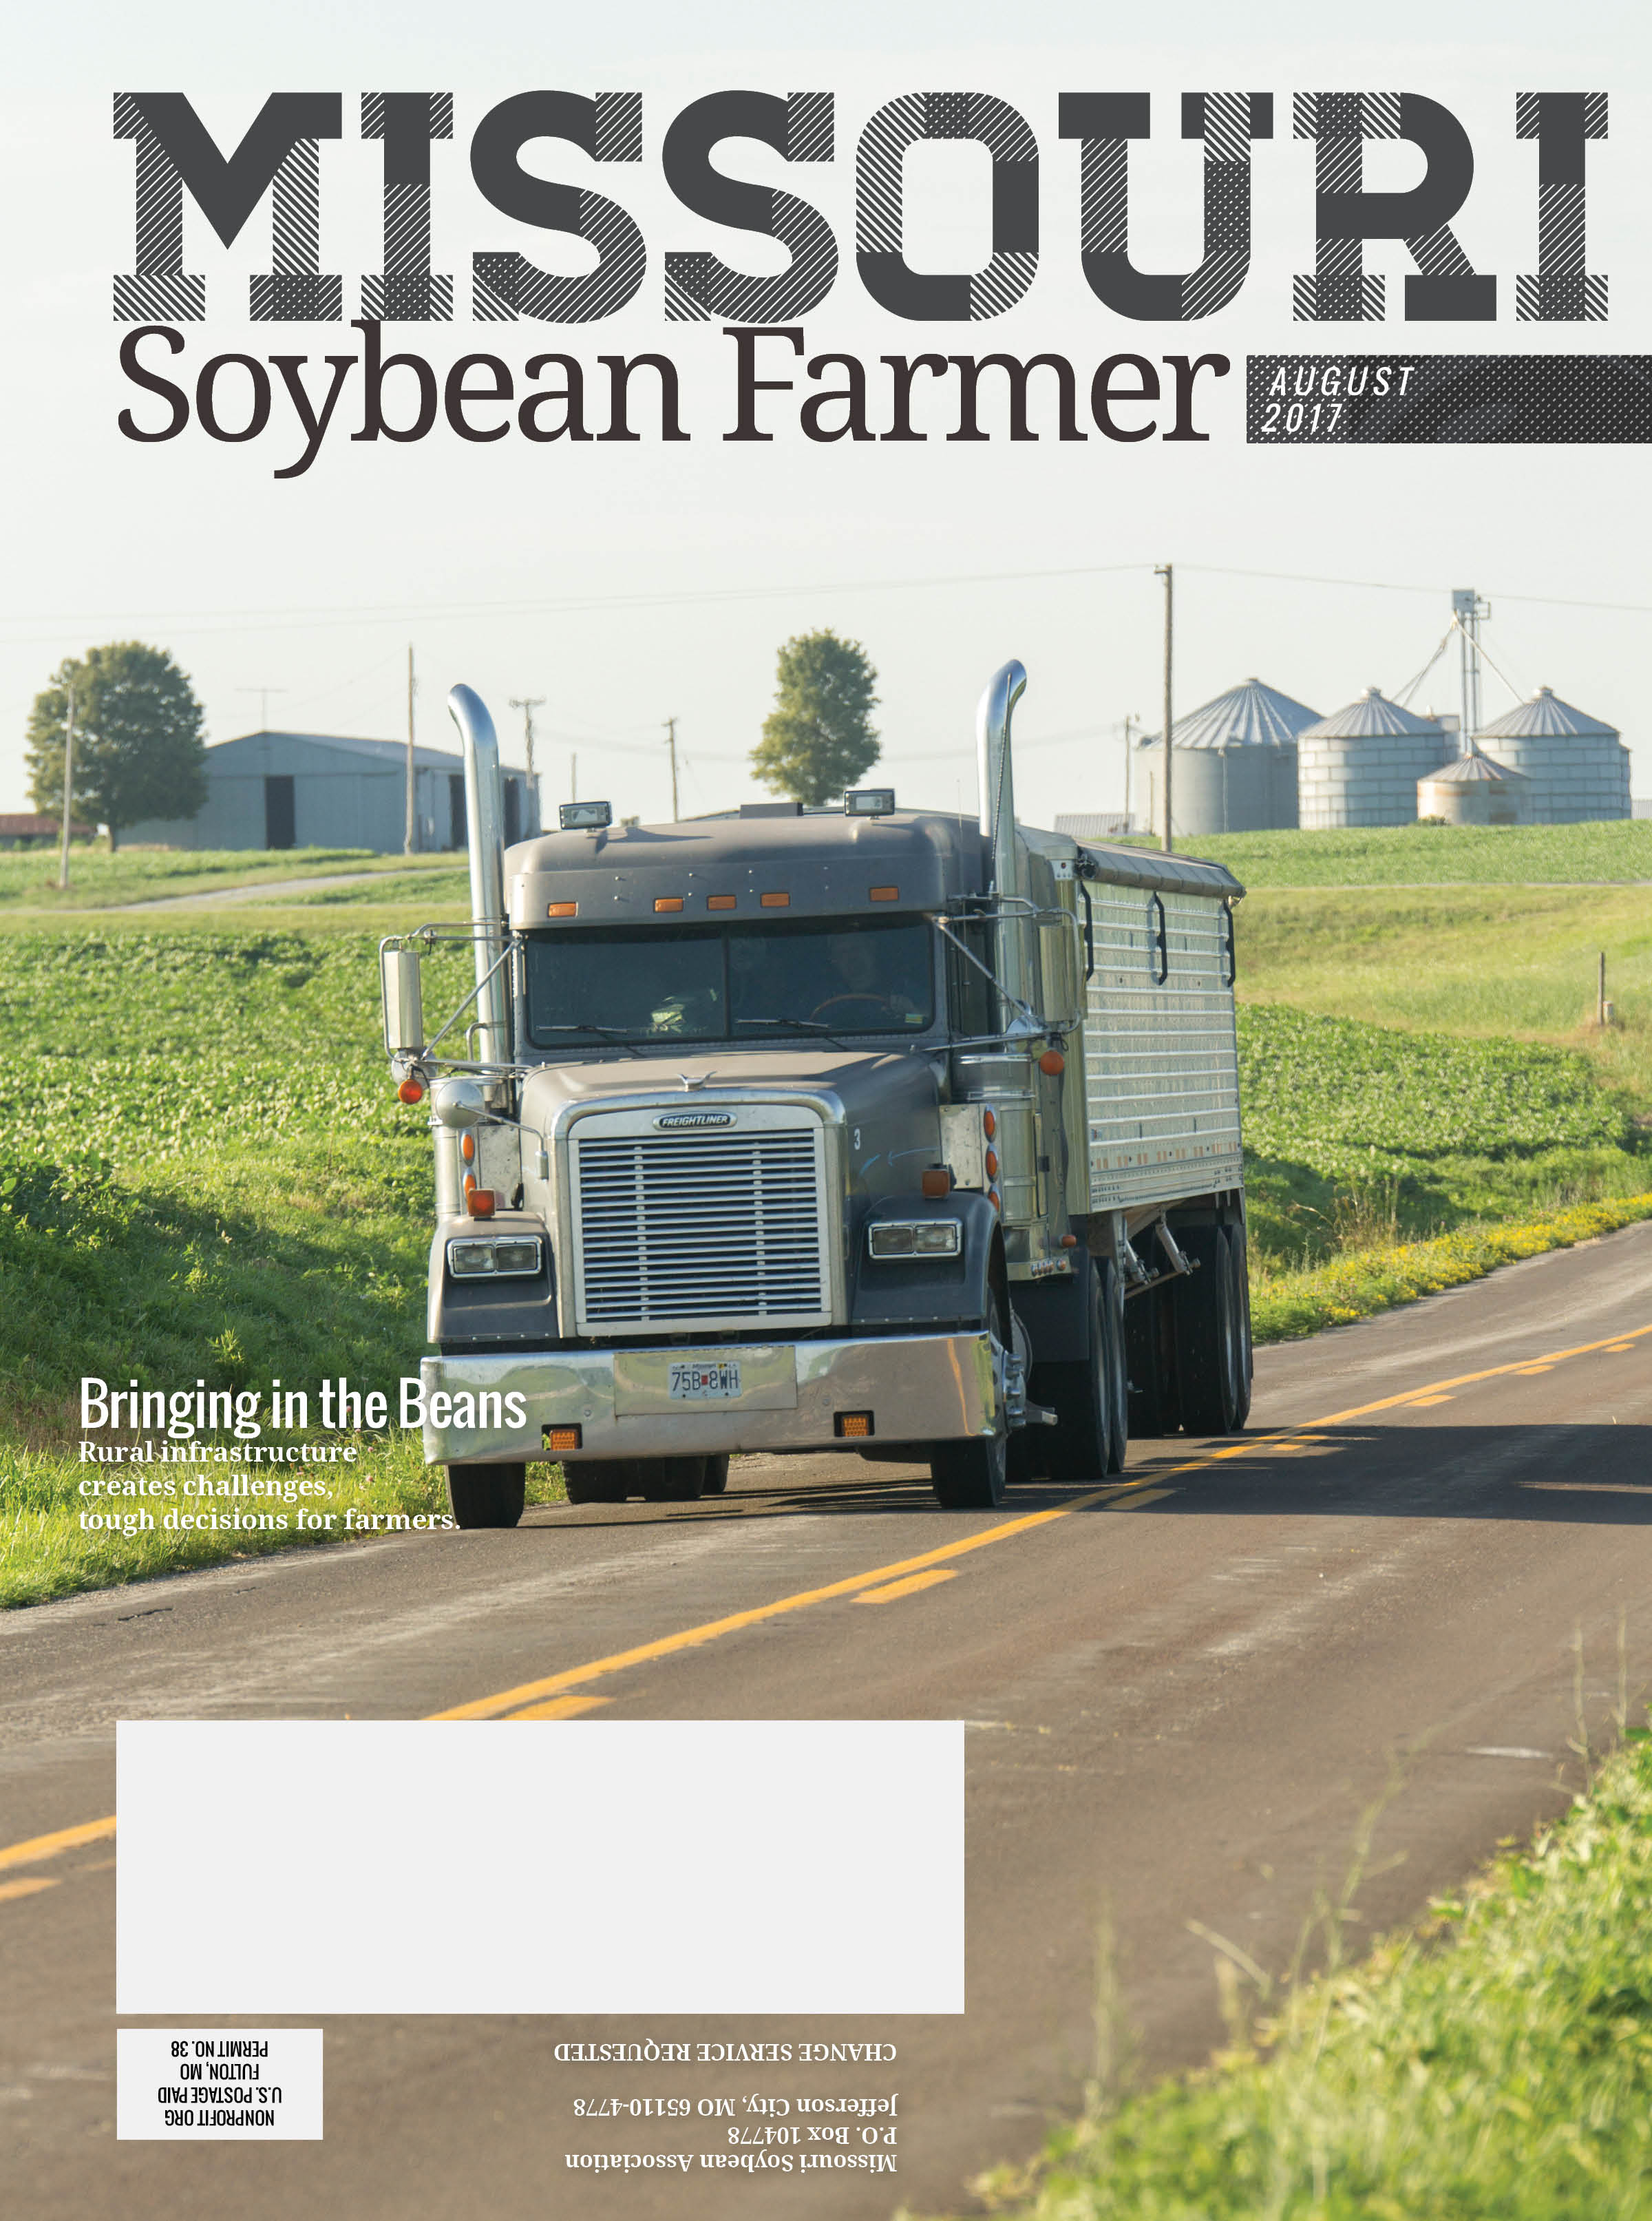 August 2017 Issue of Missouri Soybean Farmer Out Now